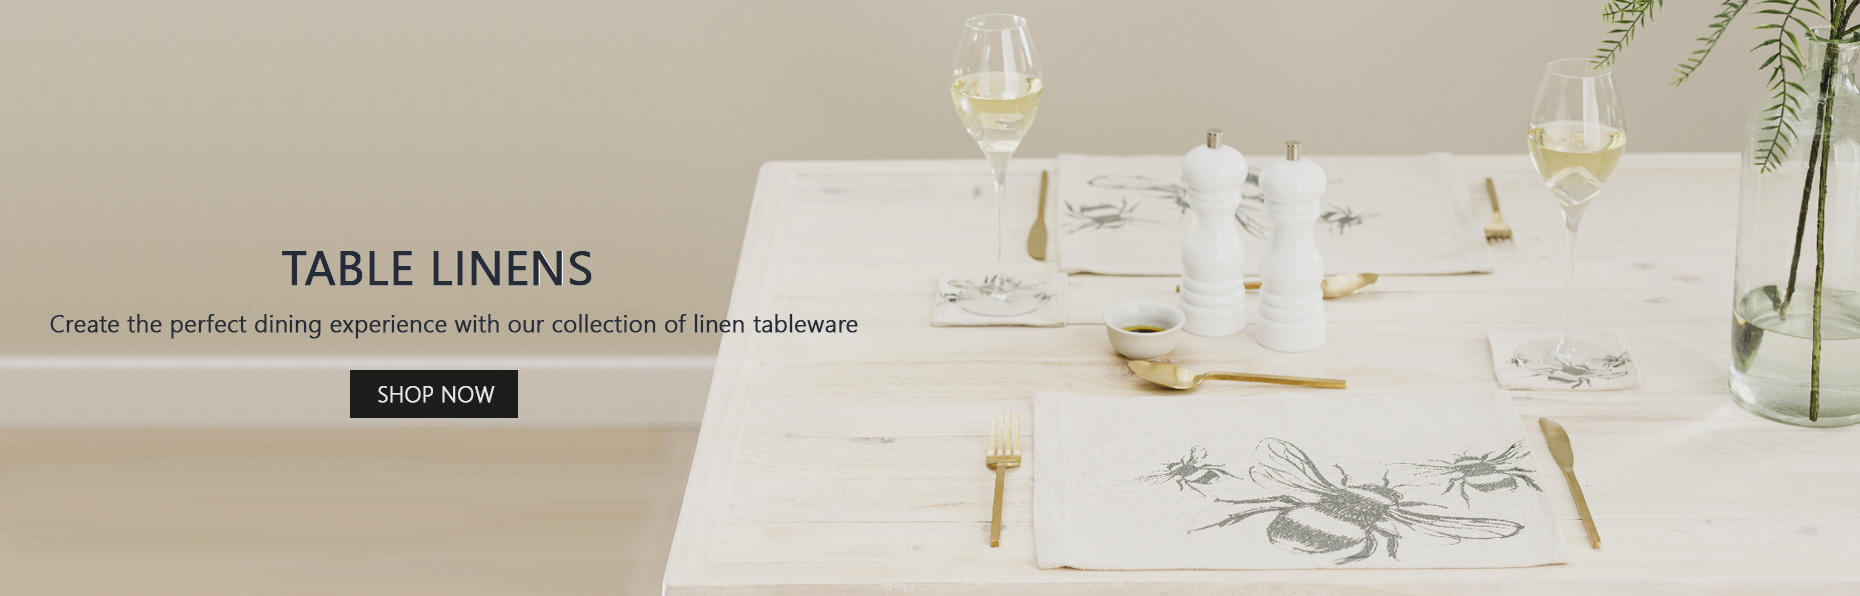 The Linen Table